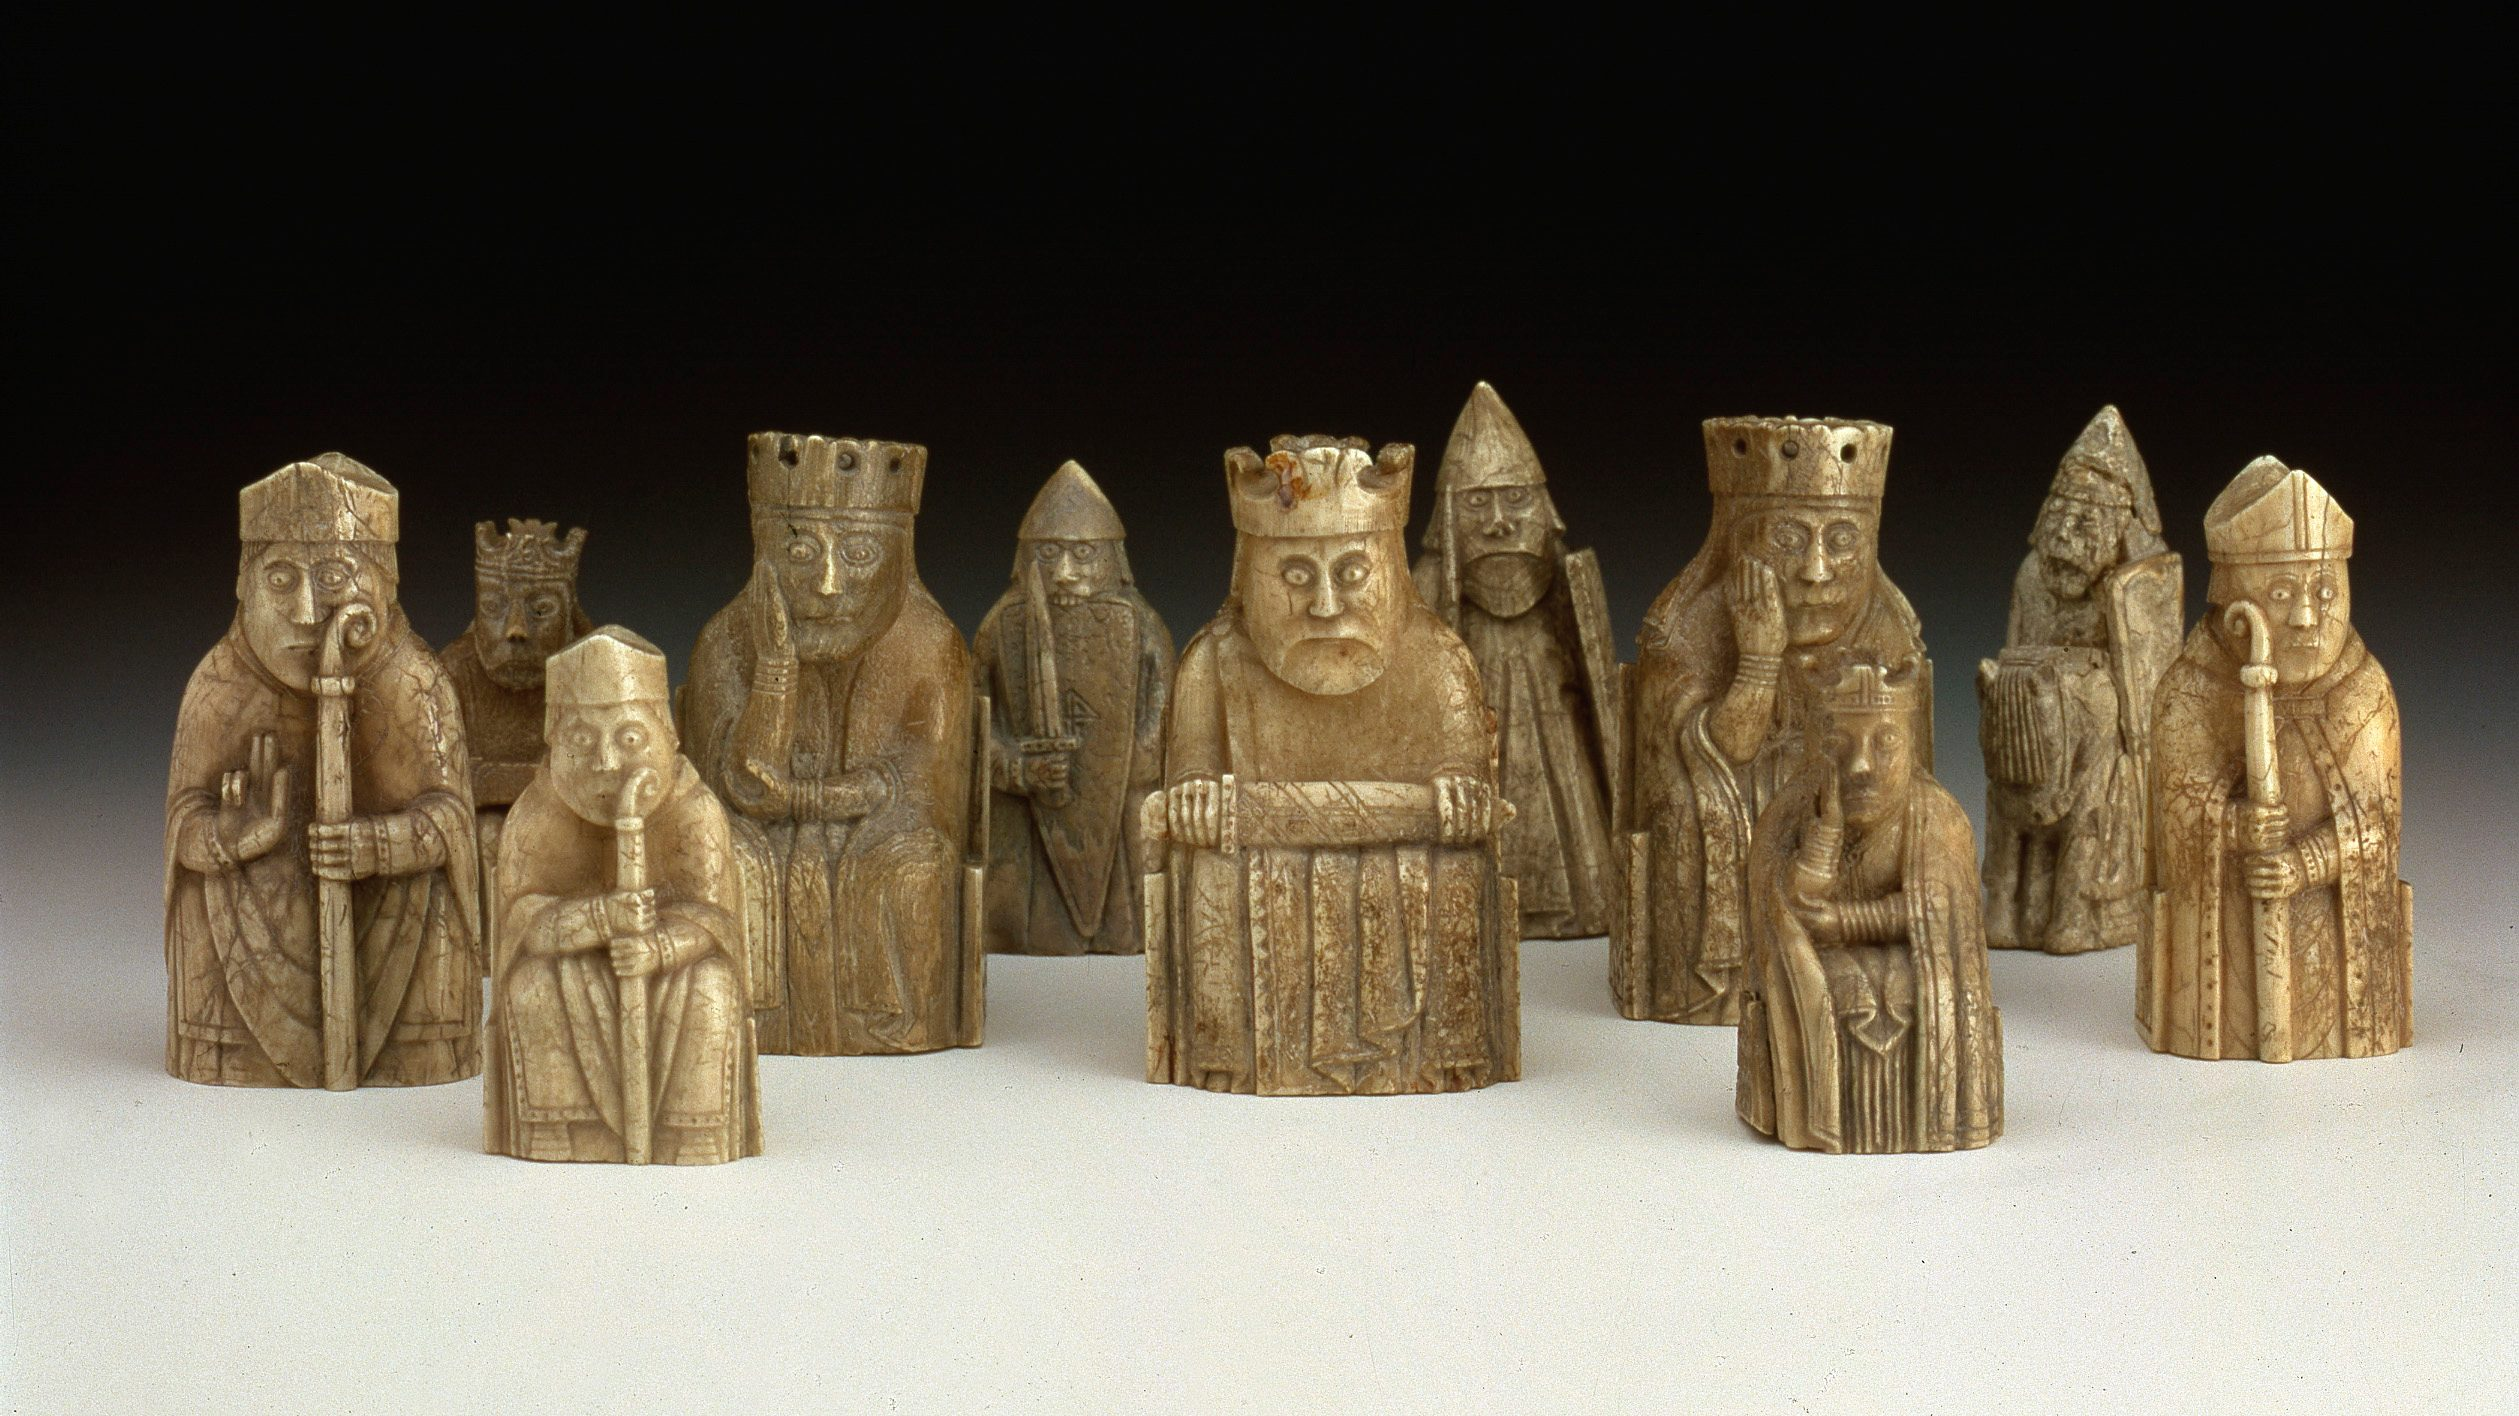 The Lewis chess pieces at the National Museum of Scotland, which started welcoming the public back last month